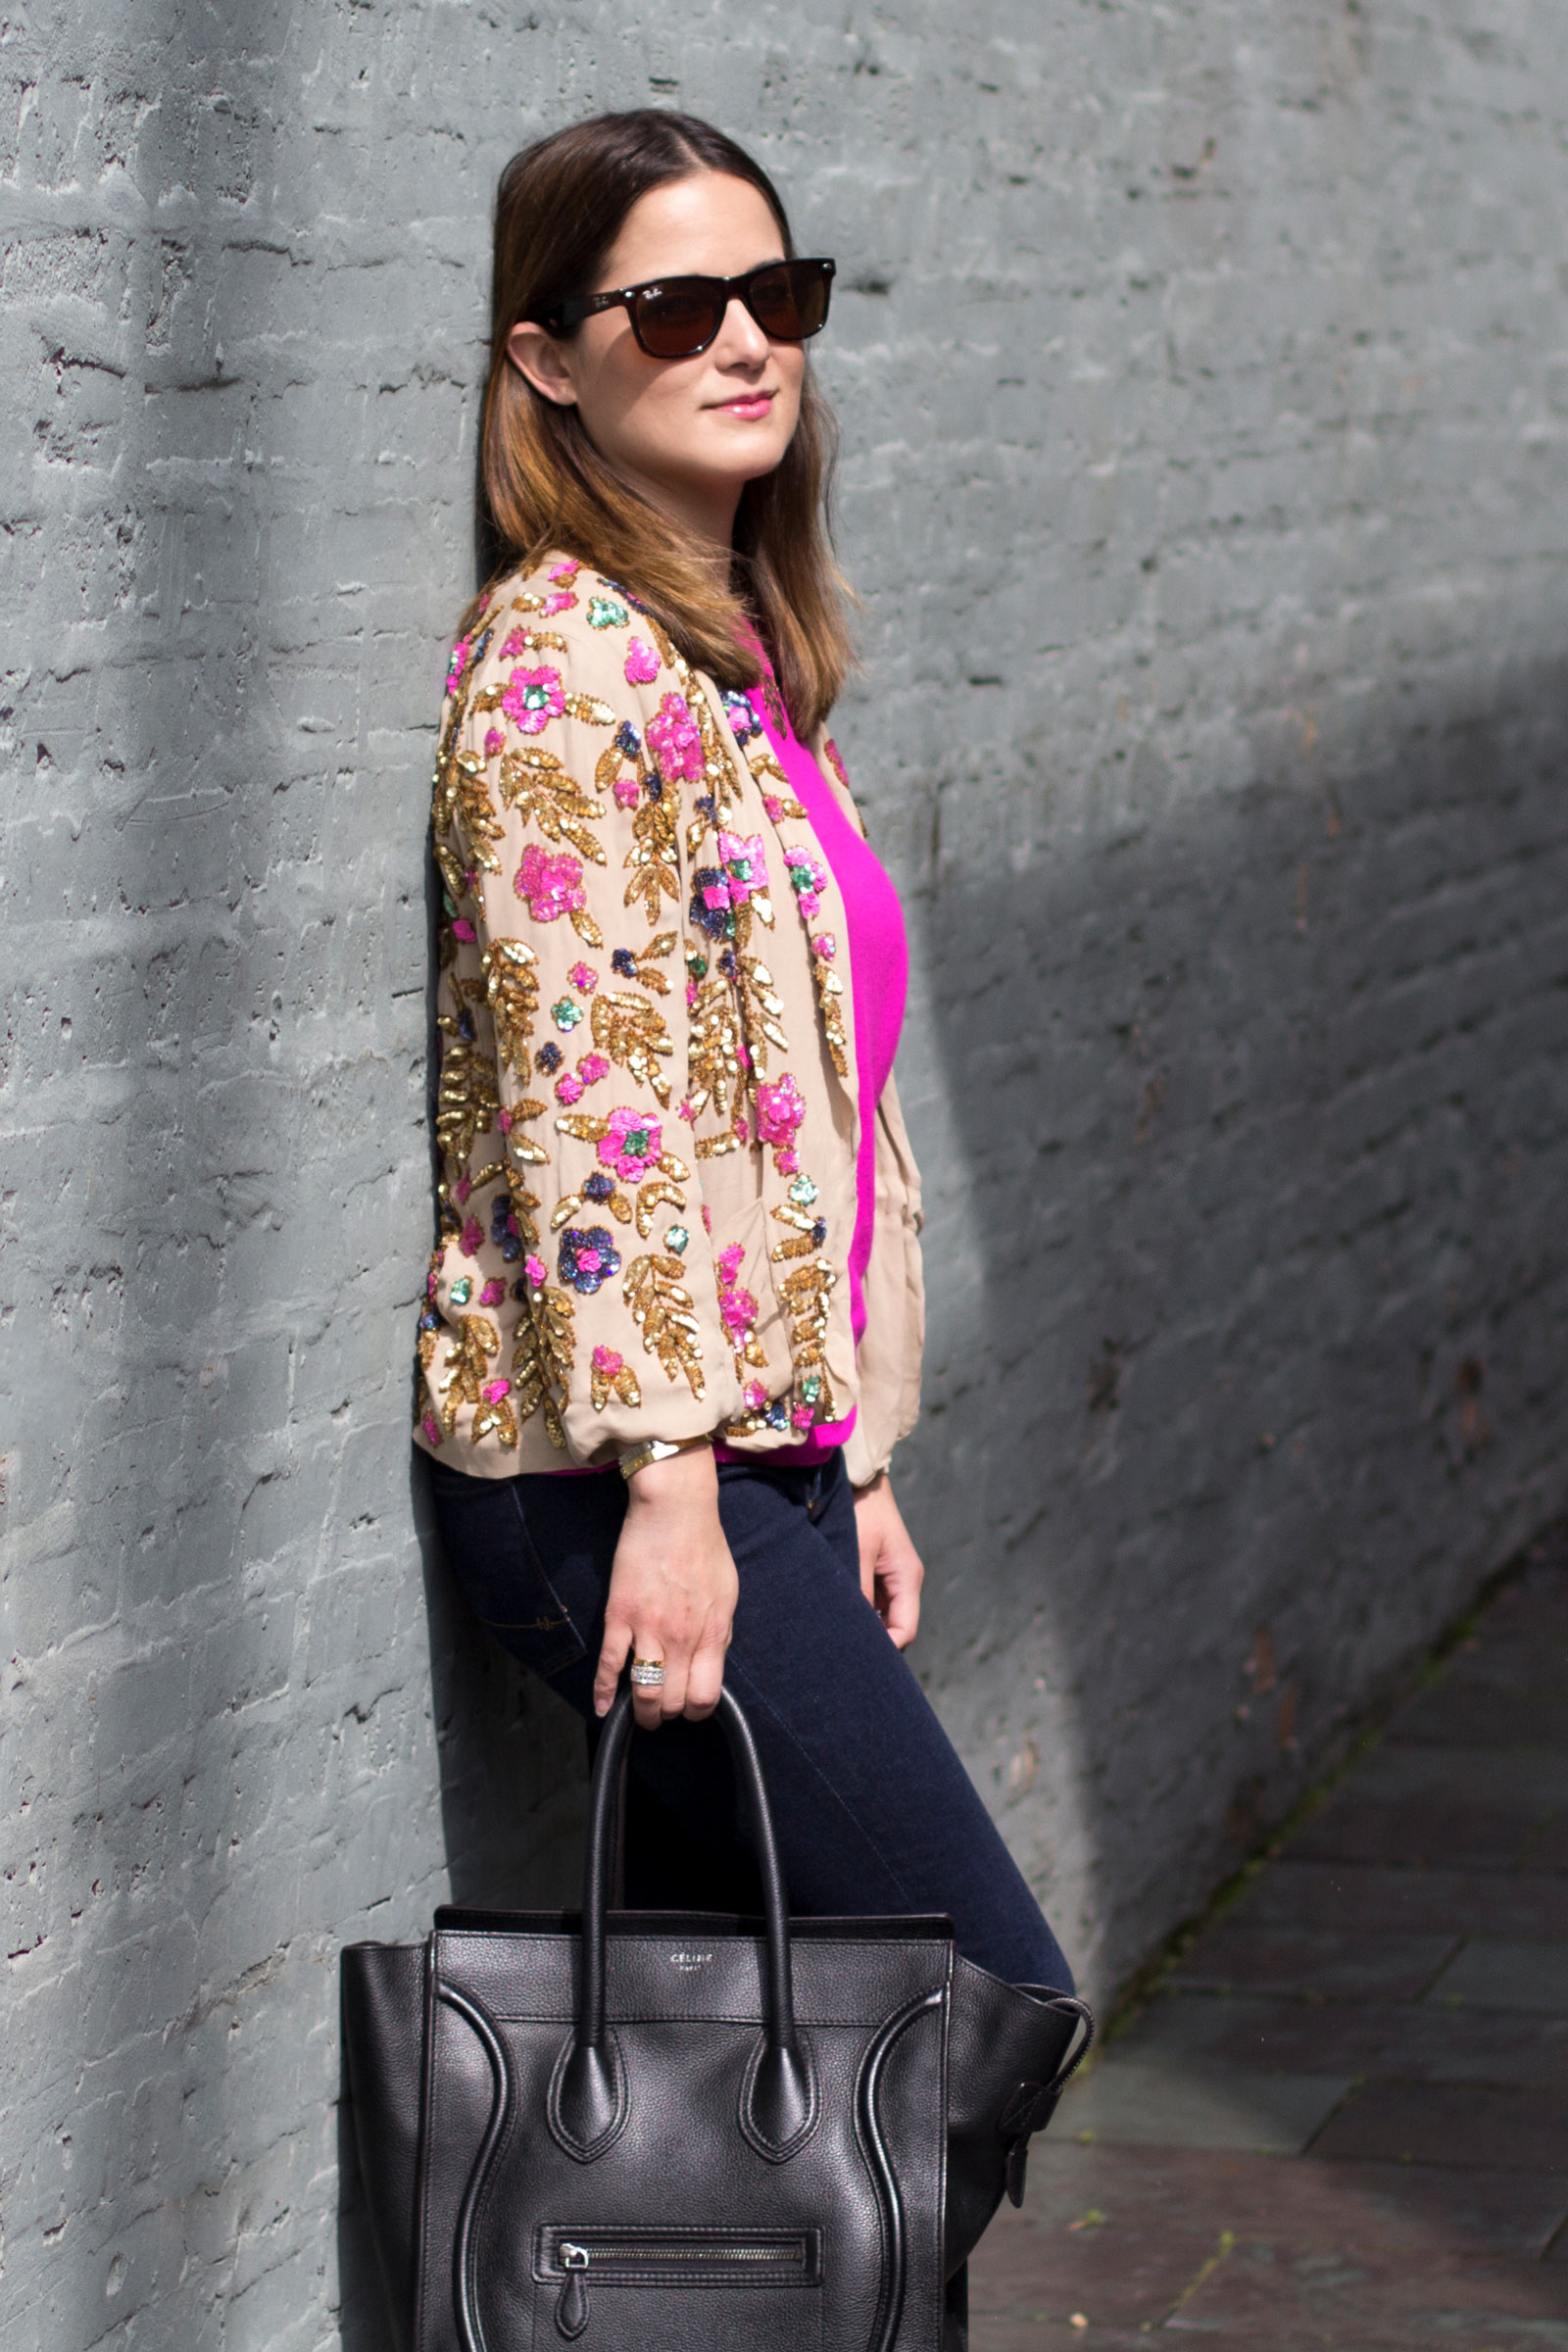 J. Crew Collection Sequin Floral Jacket